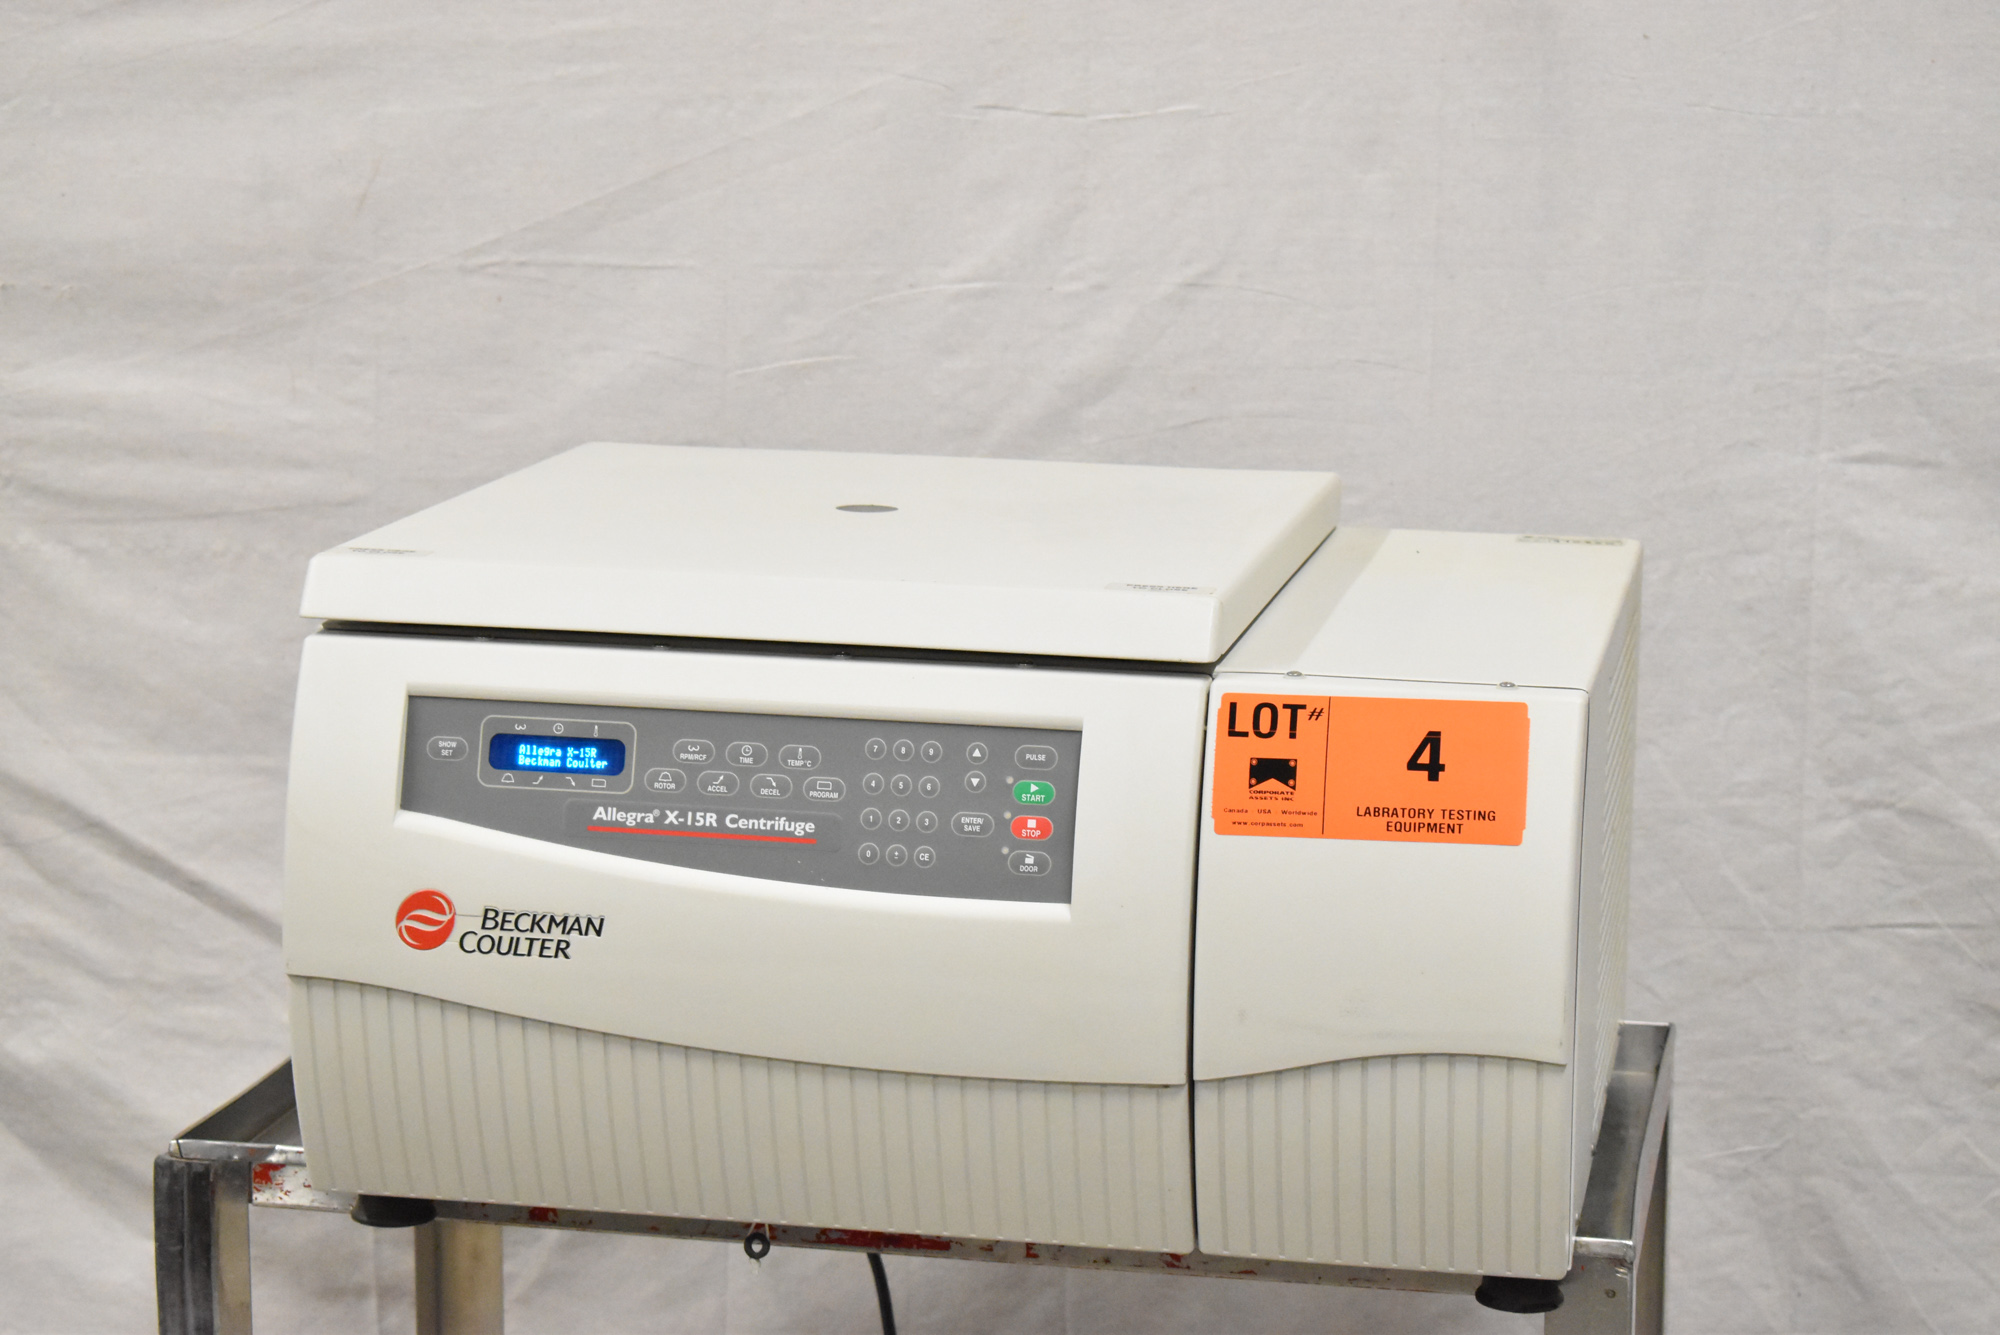 BECKMAN COULTER ALLEGRA X-15R BENCHTOP CENTRIFUGE WITH DIGITAL PROGRAMMABLE MICROPROCESSOR